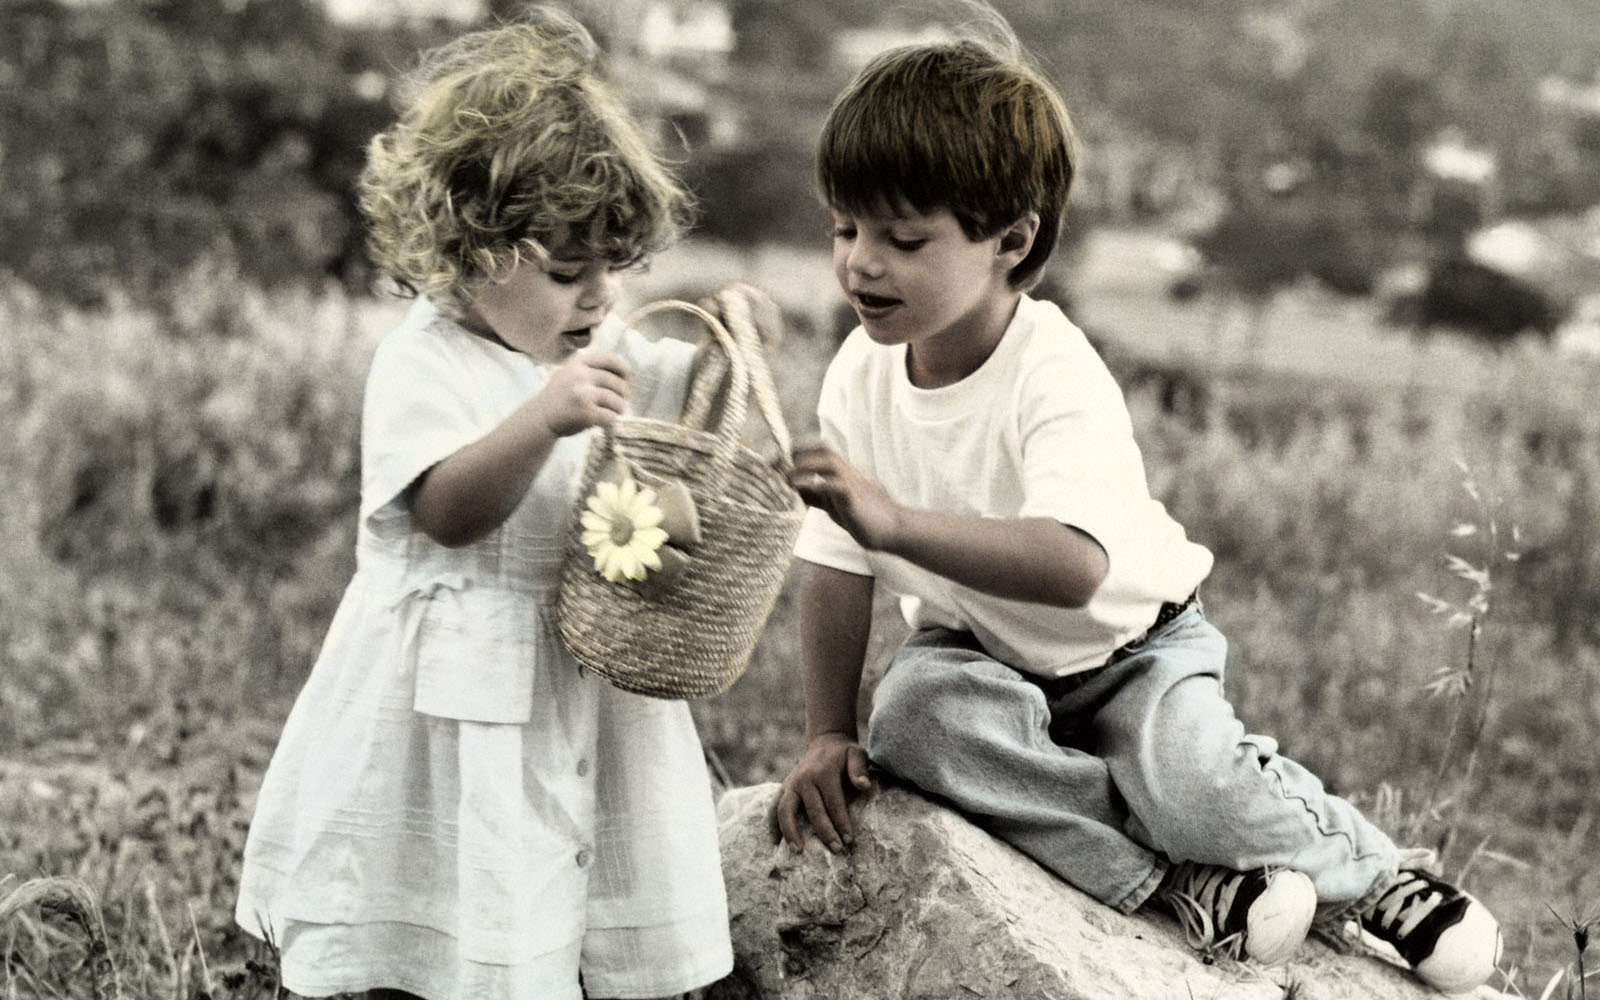 Children Love Wallpaper - Wallpapers And Pictures